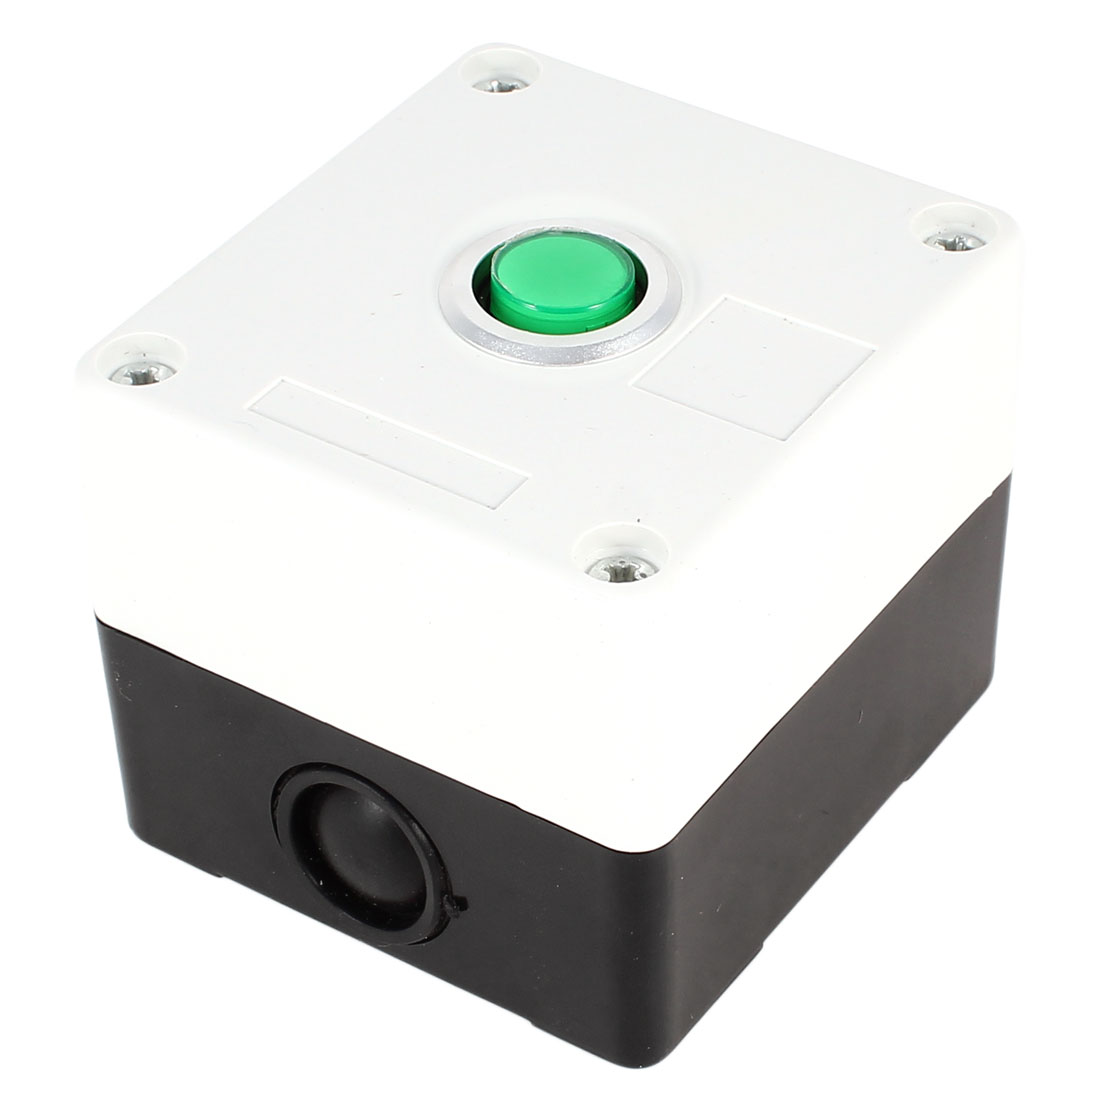 AC 220V 5A SPDT 1 NO 1 NC 3 Termianls Soldering Self-Locking Green Button Pushbutton Control Station Box